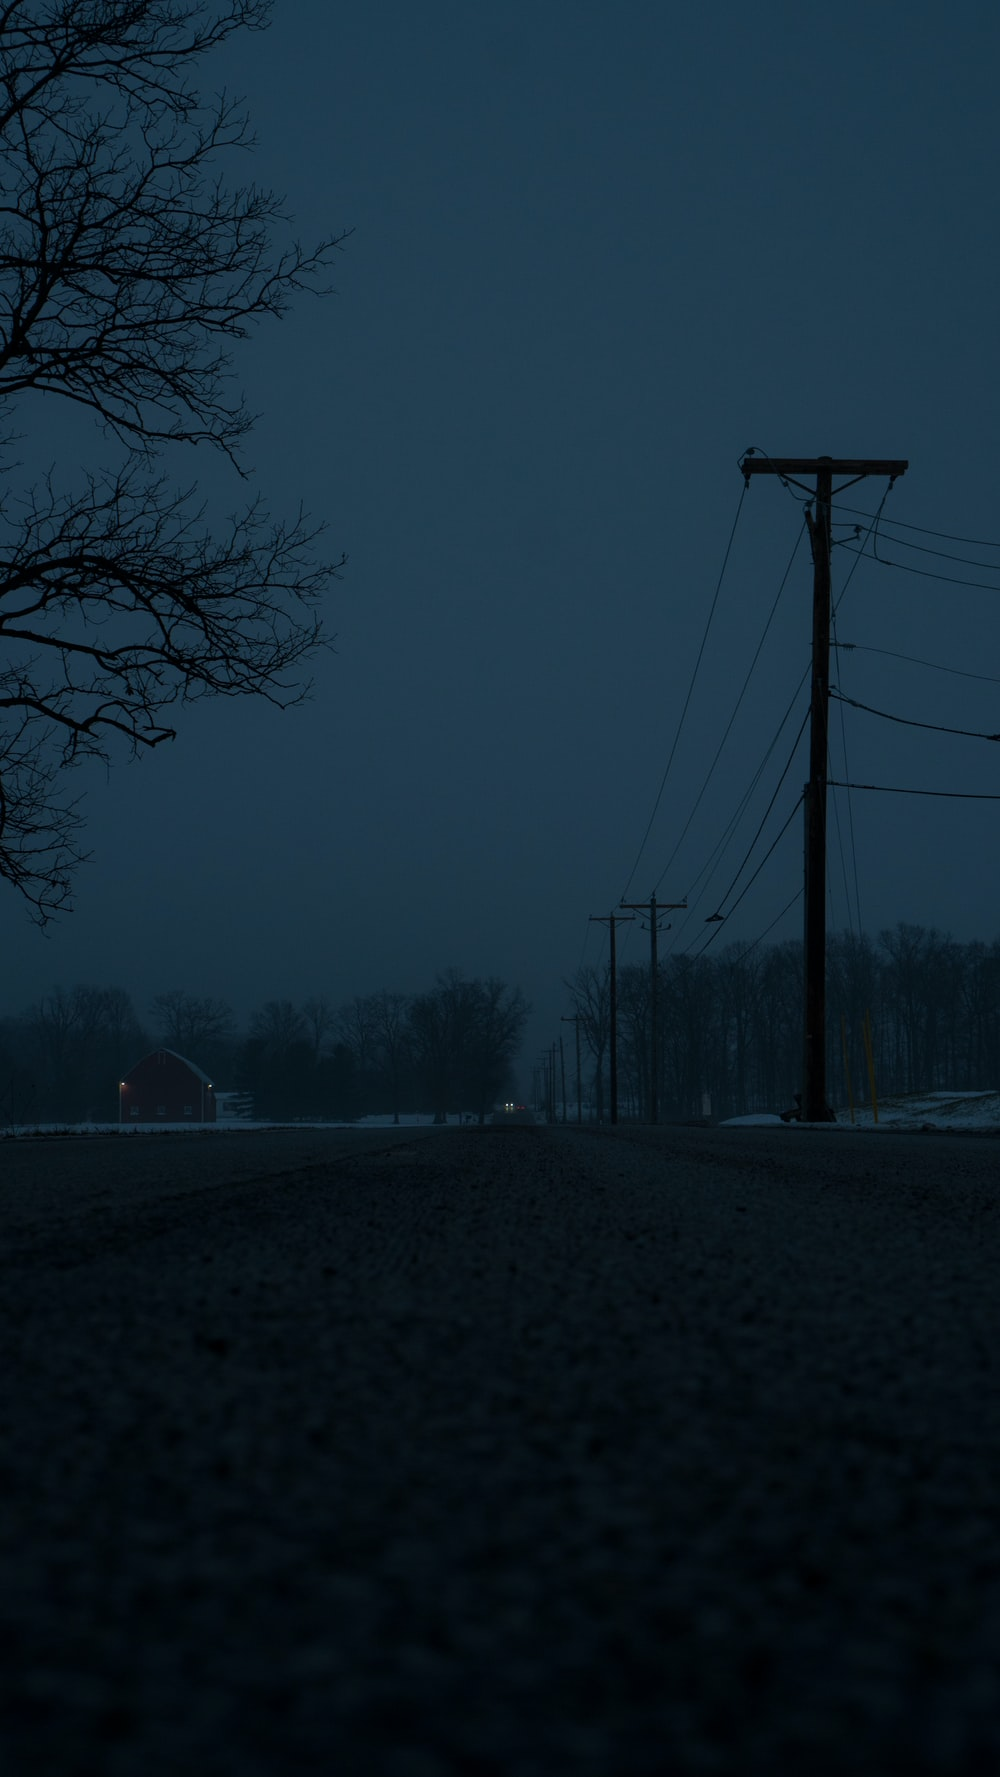 dark field lined with electric poles